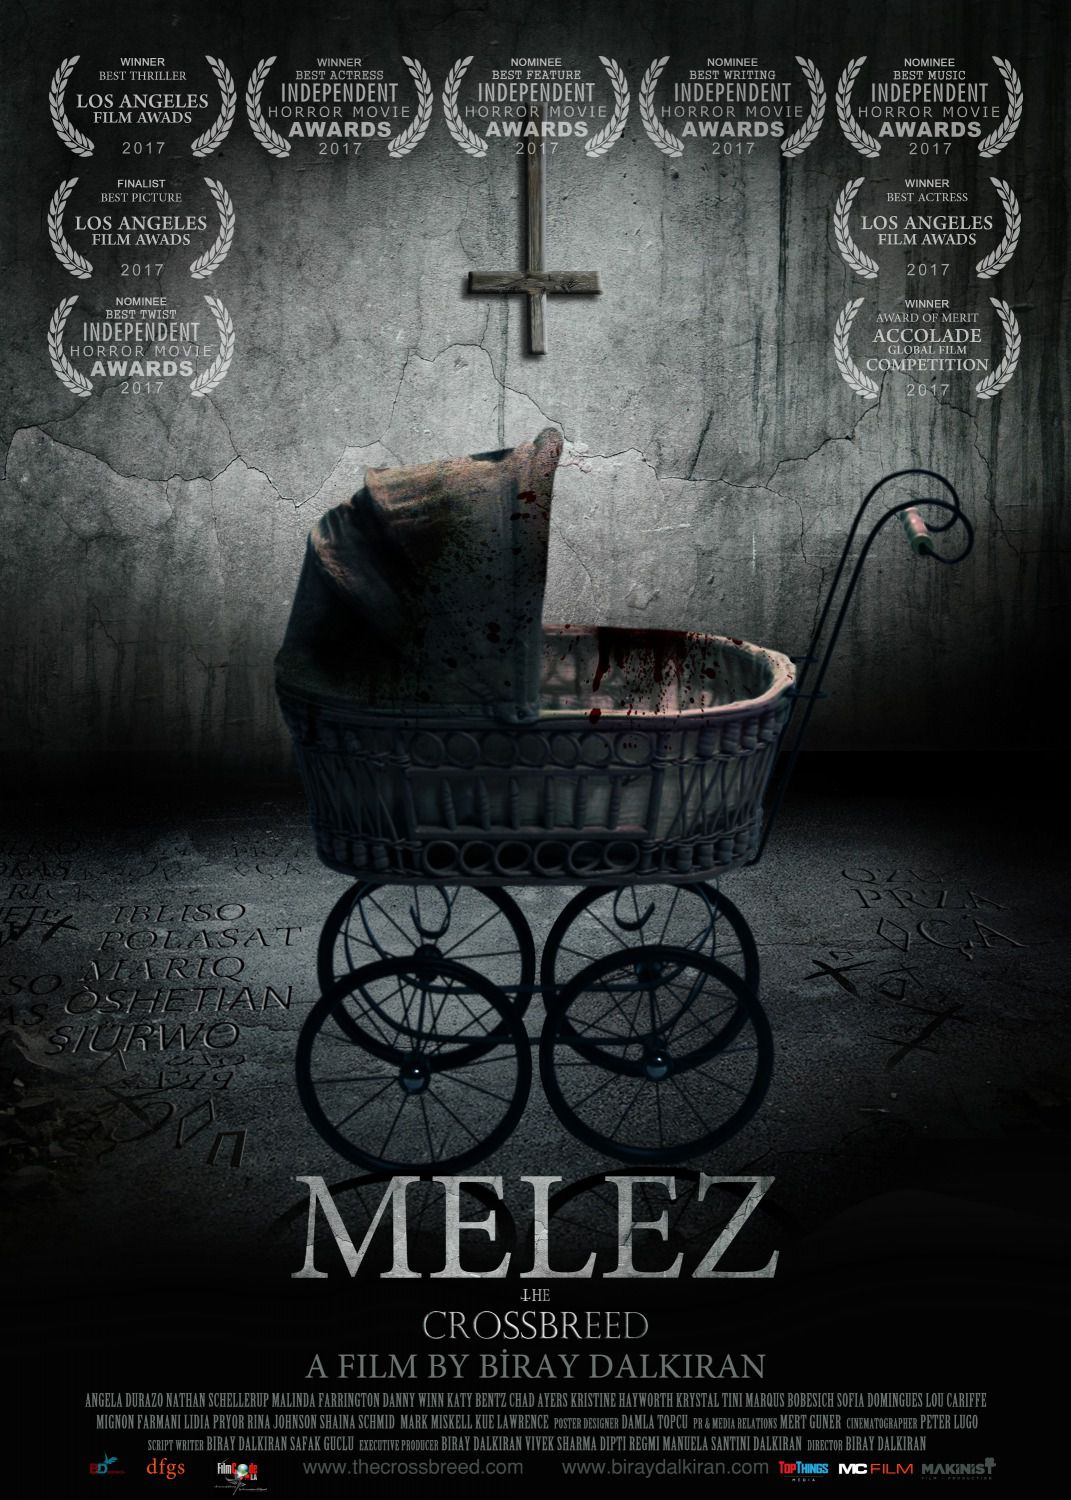 Crossbreed - Melez the Crossbreed by Biray Dalkiran - Cast: Angela Durazo is Amy, Chad Ayers is Steihen, Danny Winn is Paul, Katy Bentz is Rose, Malinda Farrington is Maria, Nathan Schellerup is John - horror film poster 2018 - passeggino - stroller